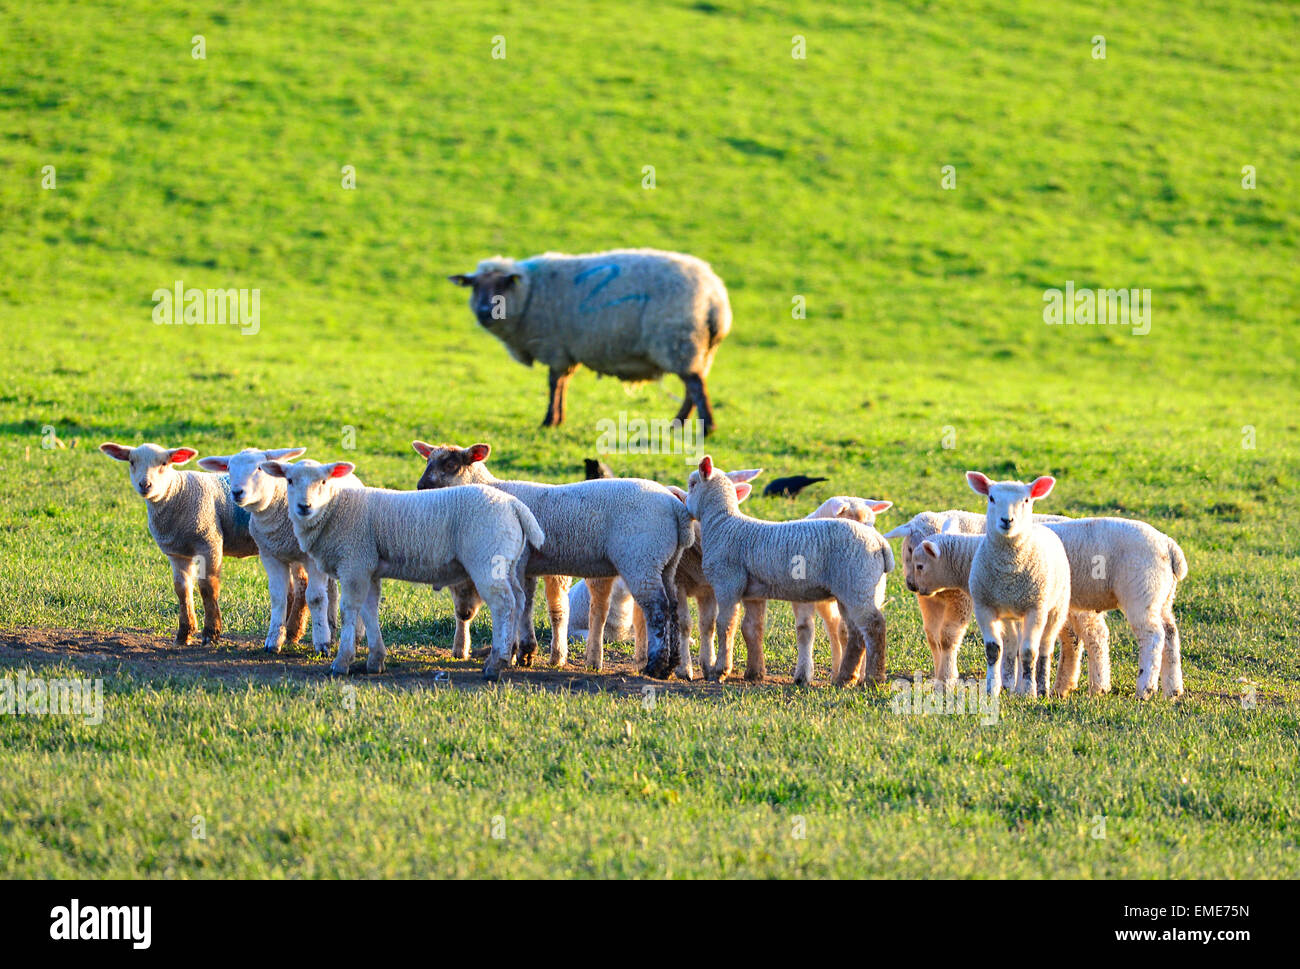 Flock of lambs watched by a sheep in a field at Burt, County Donegal, Ireland. - Stock Image